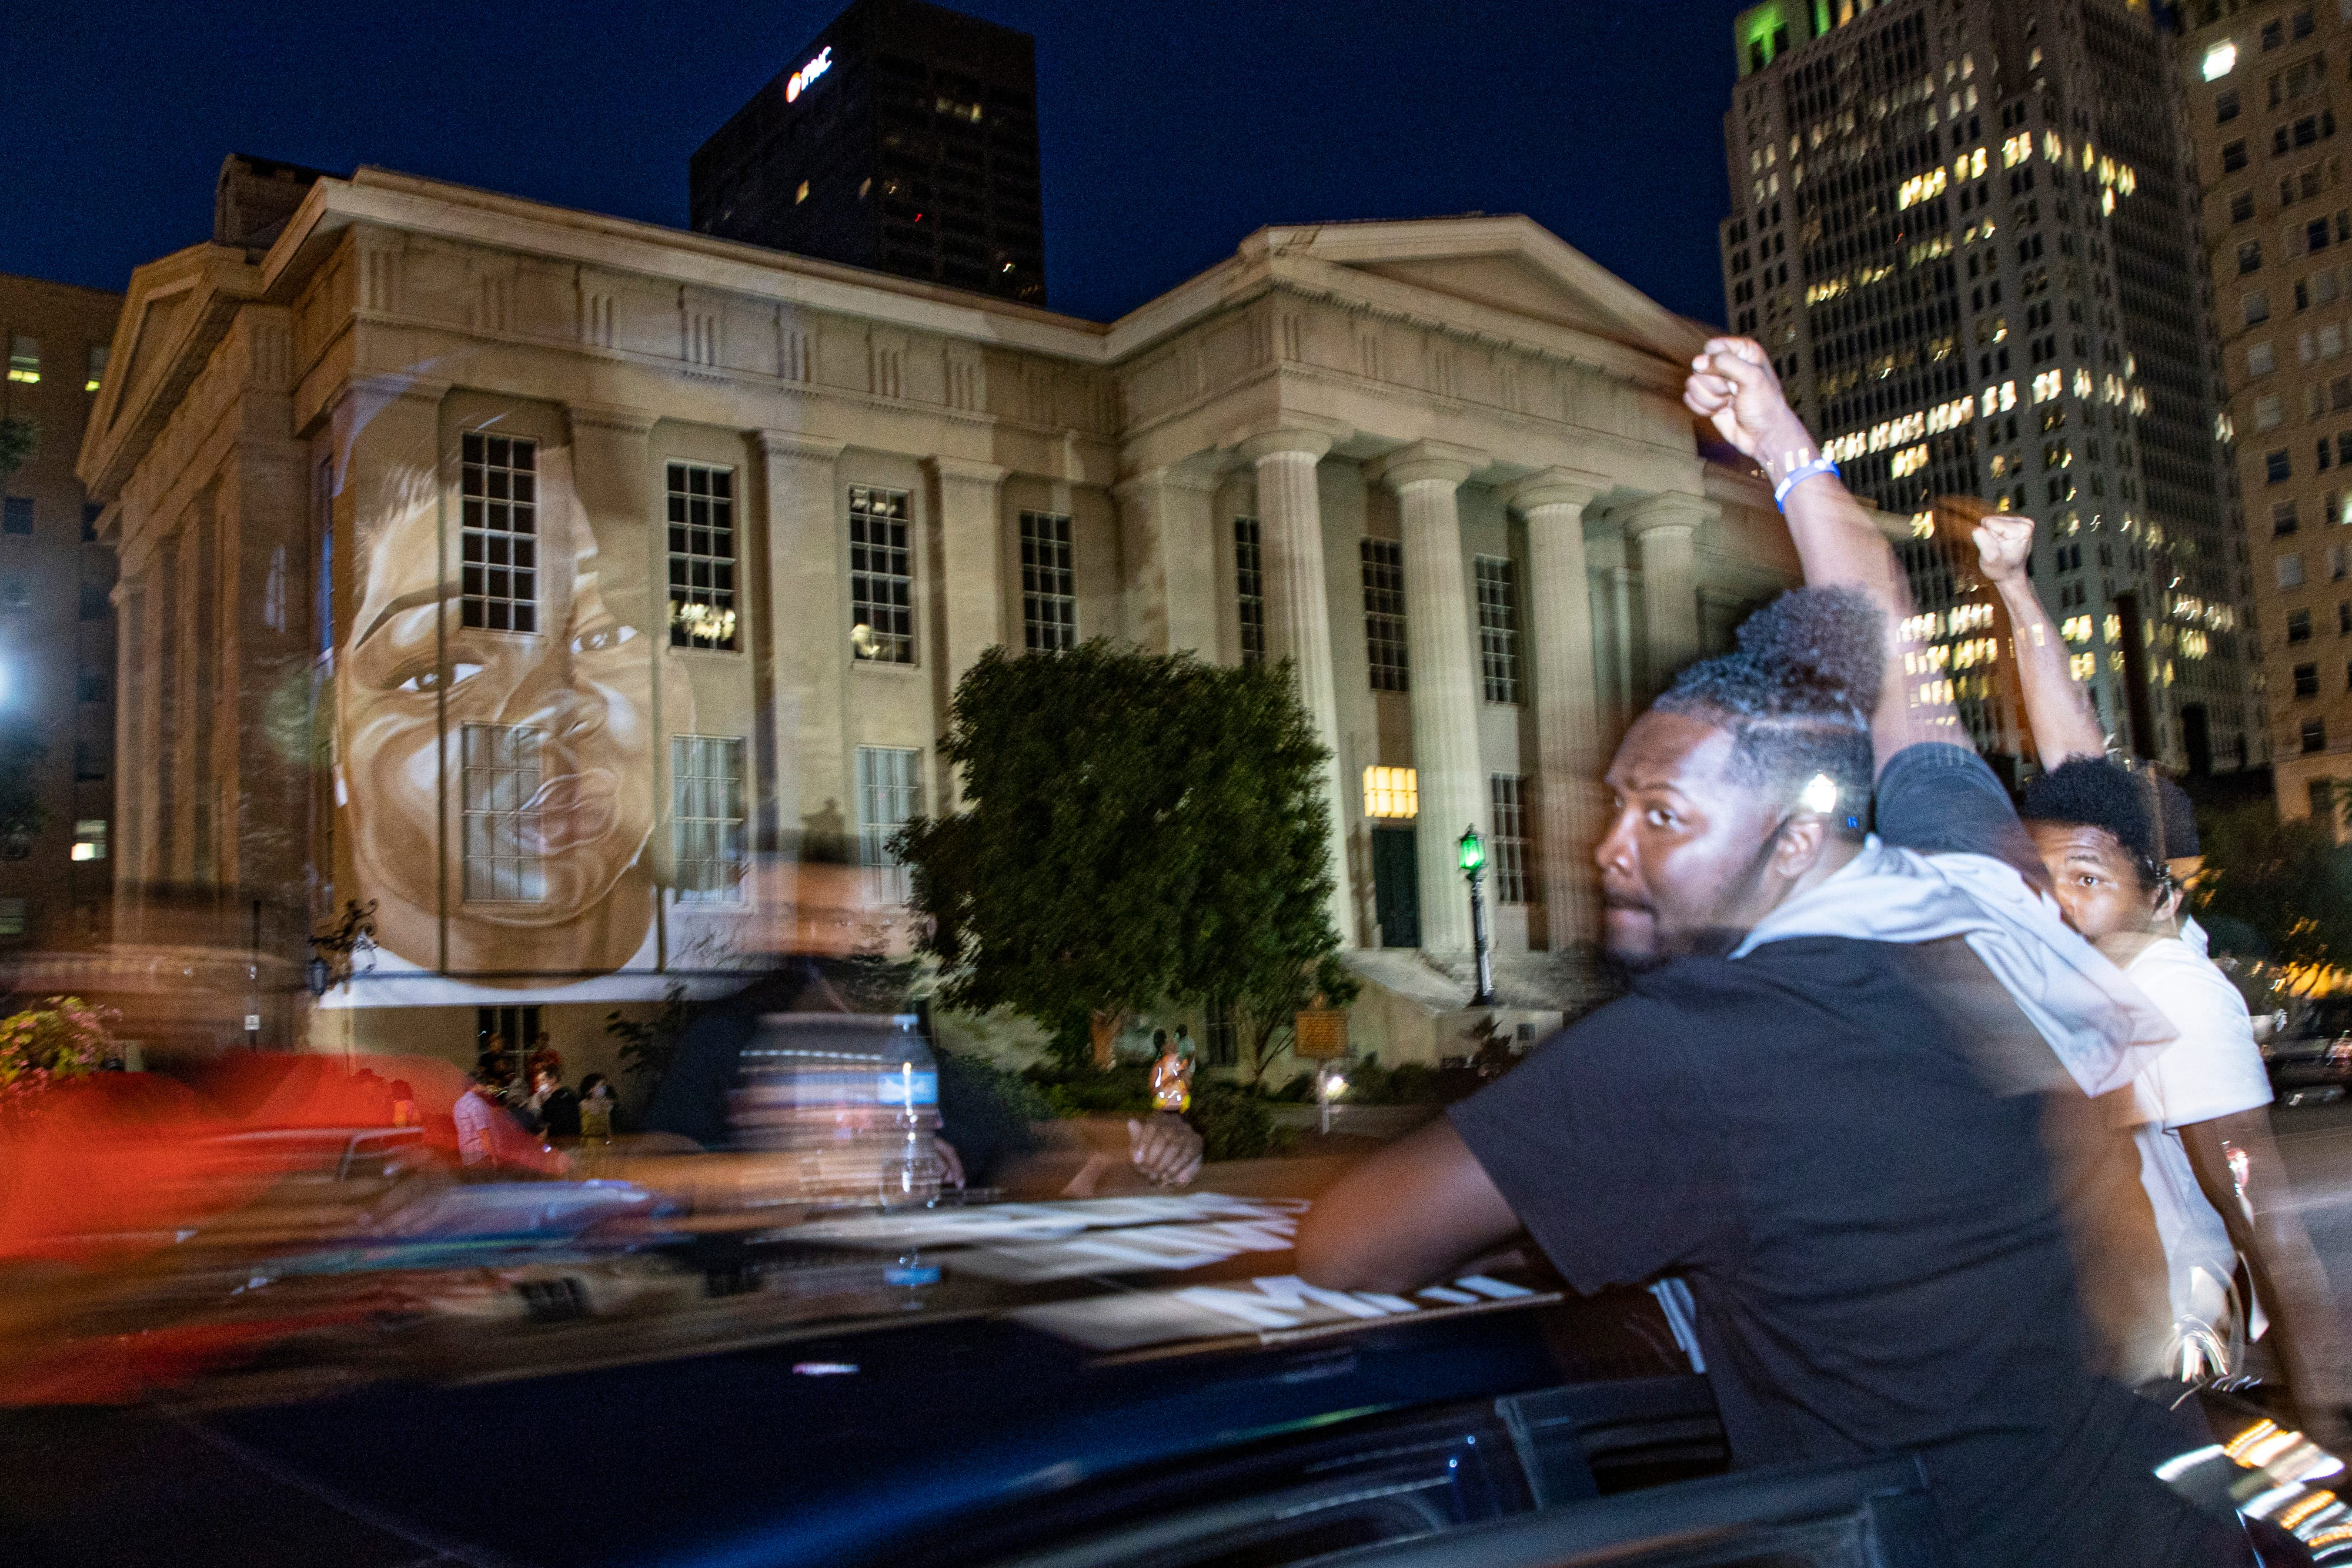 Protesters drive past a portrait of Breonna Taylor, made by local artist Jaylin Stewart, is projected onto Metro Hall during a celebration and protest of police brutality and justice on what would have been the 27th birthday of Breonna Taylor in Louisville. June 5, 2020